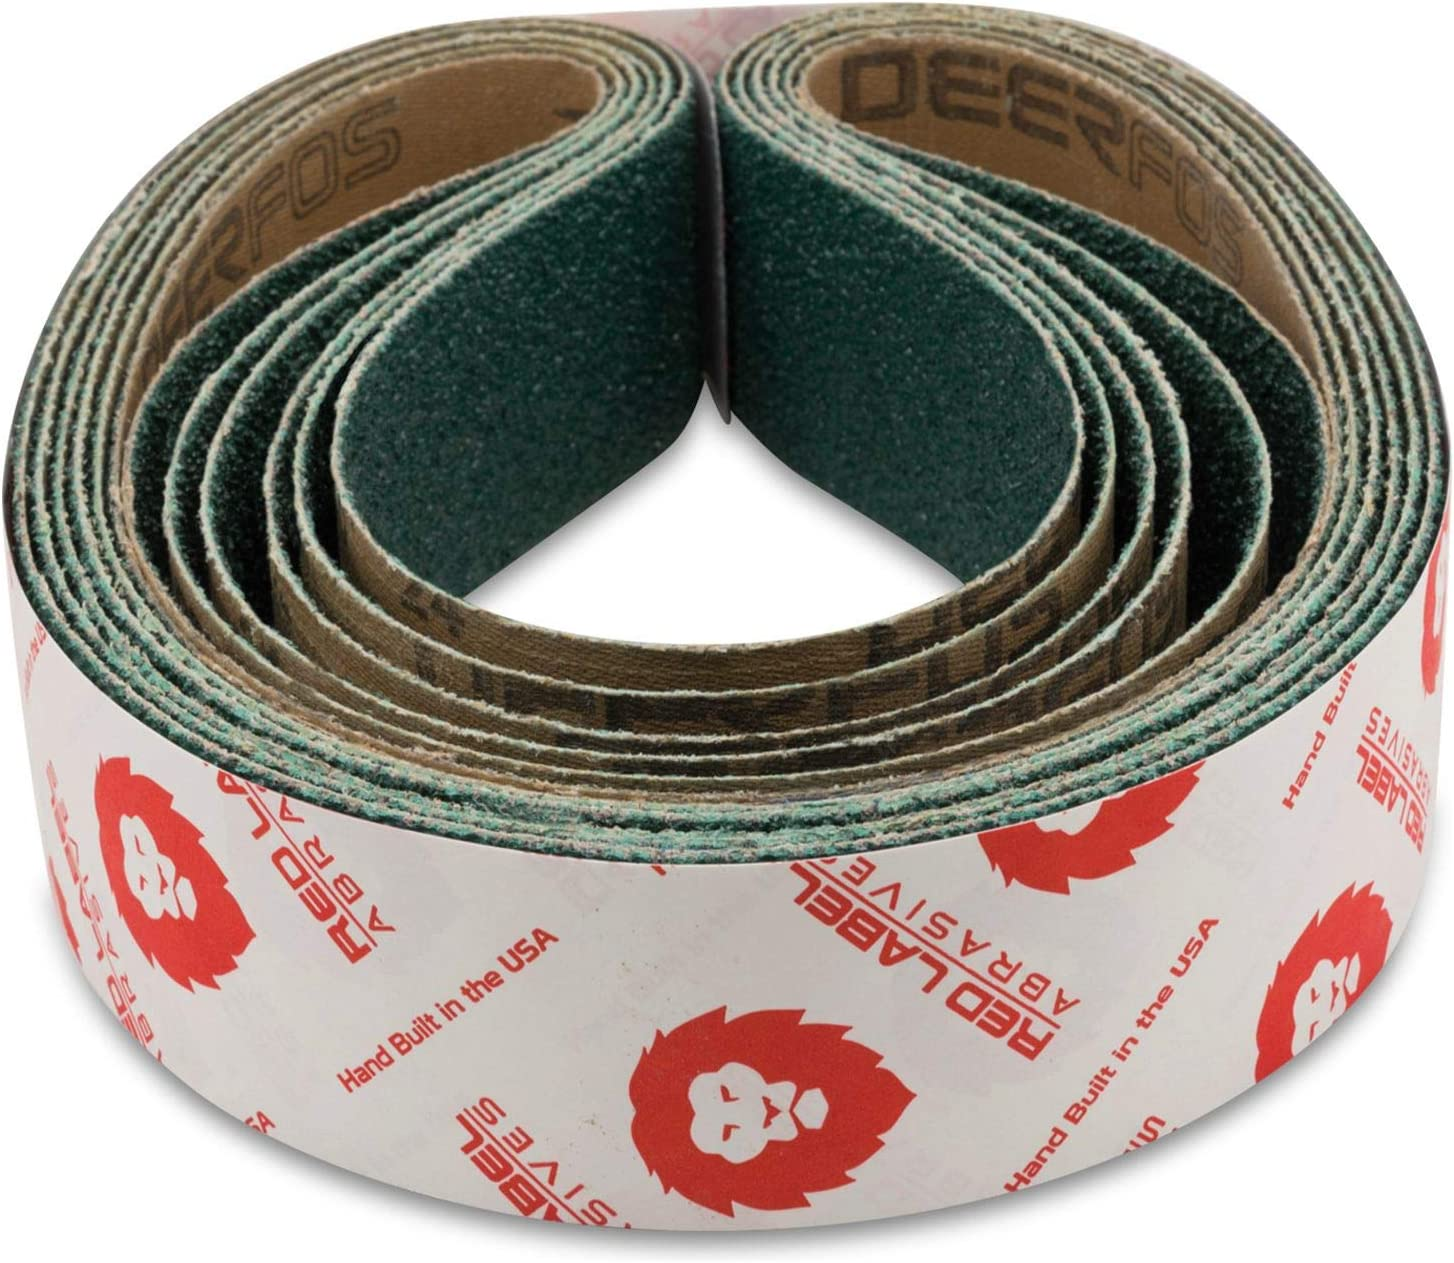 4 Pack 6 Inch X 80 Inch 400 Grit Cloth Edge Narrow Sanding Belts